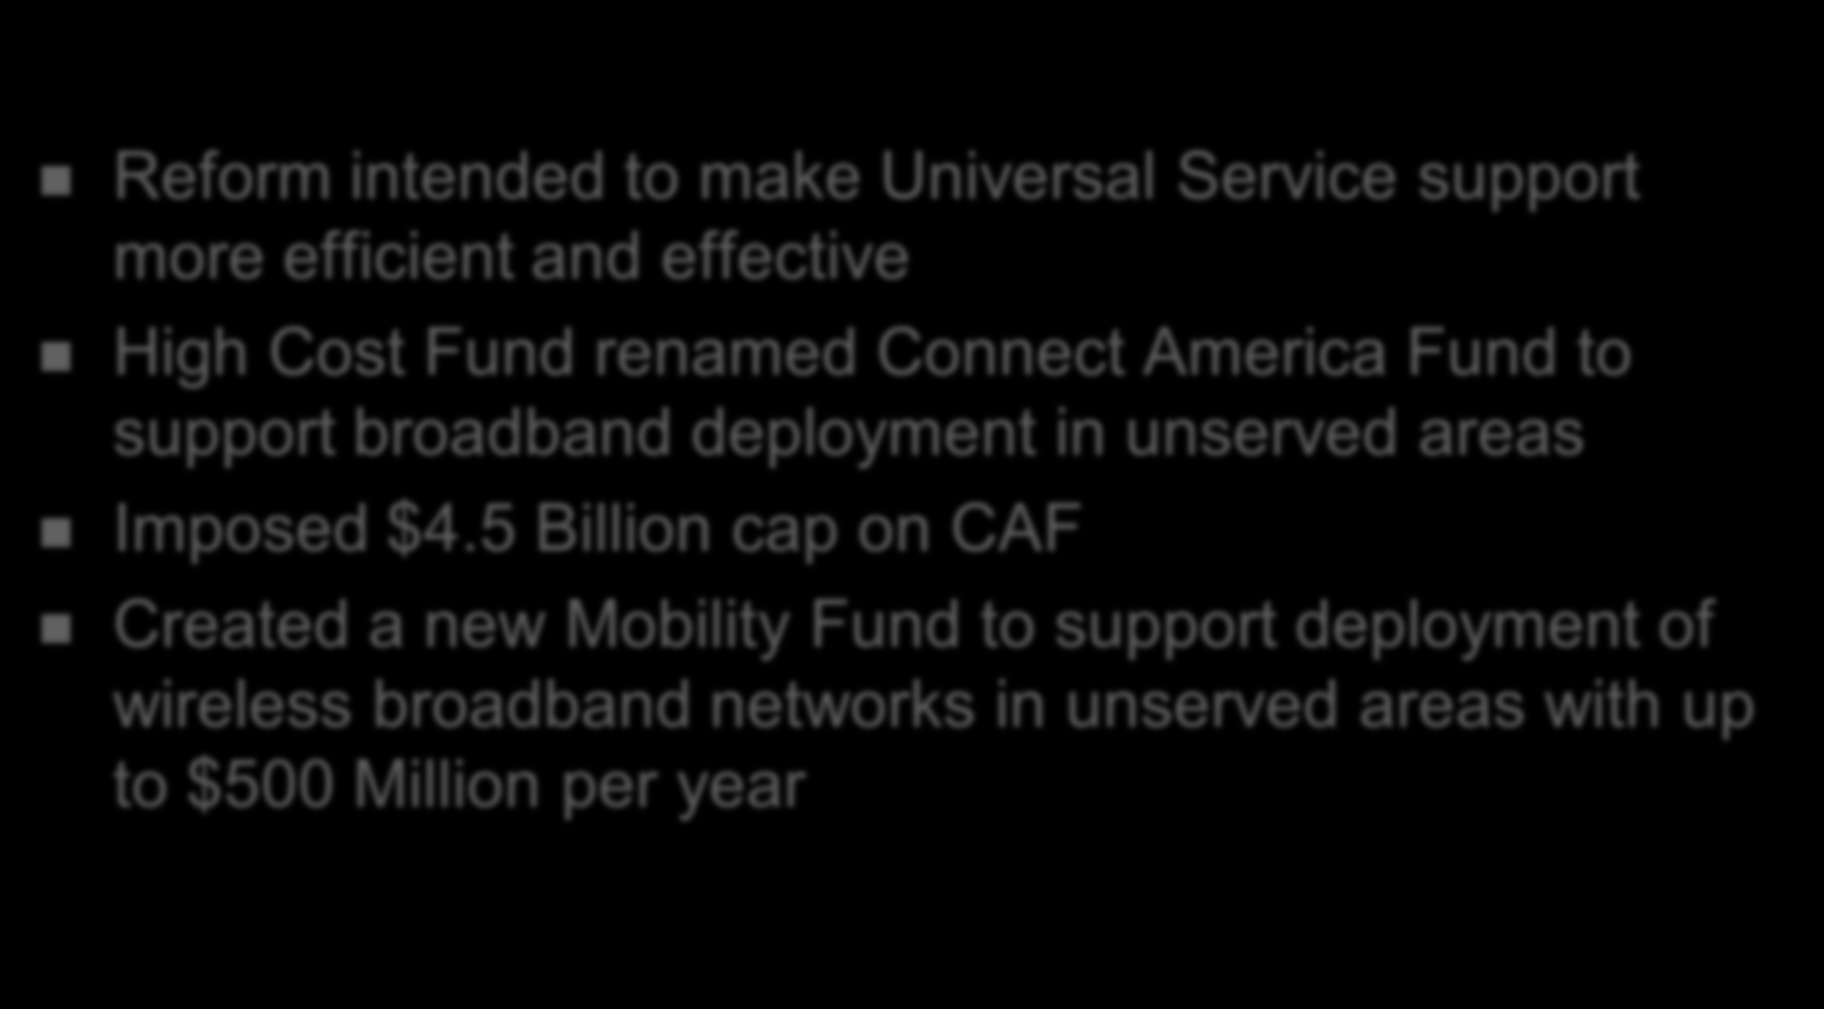 USF Reform Reform intended to make Universal Service support more efficient and effective High Cost Fund renamed Connect America Fund to support broadband deployment in